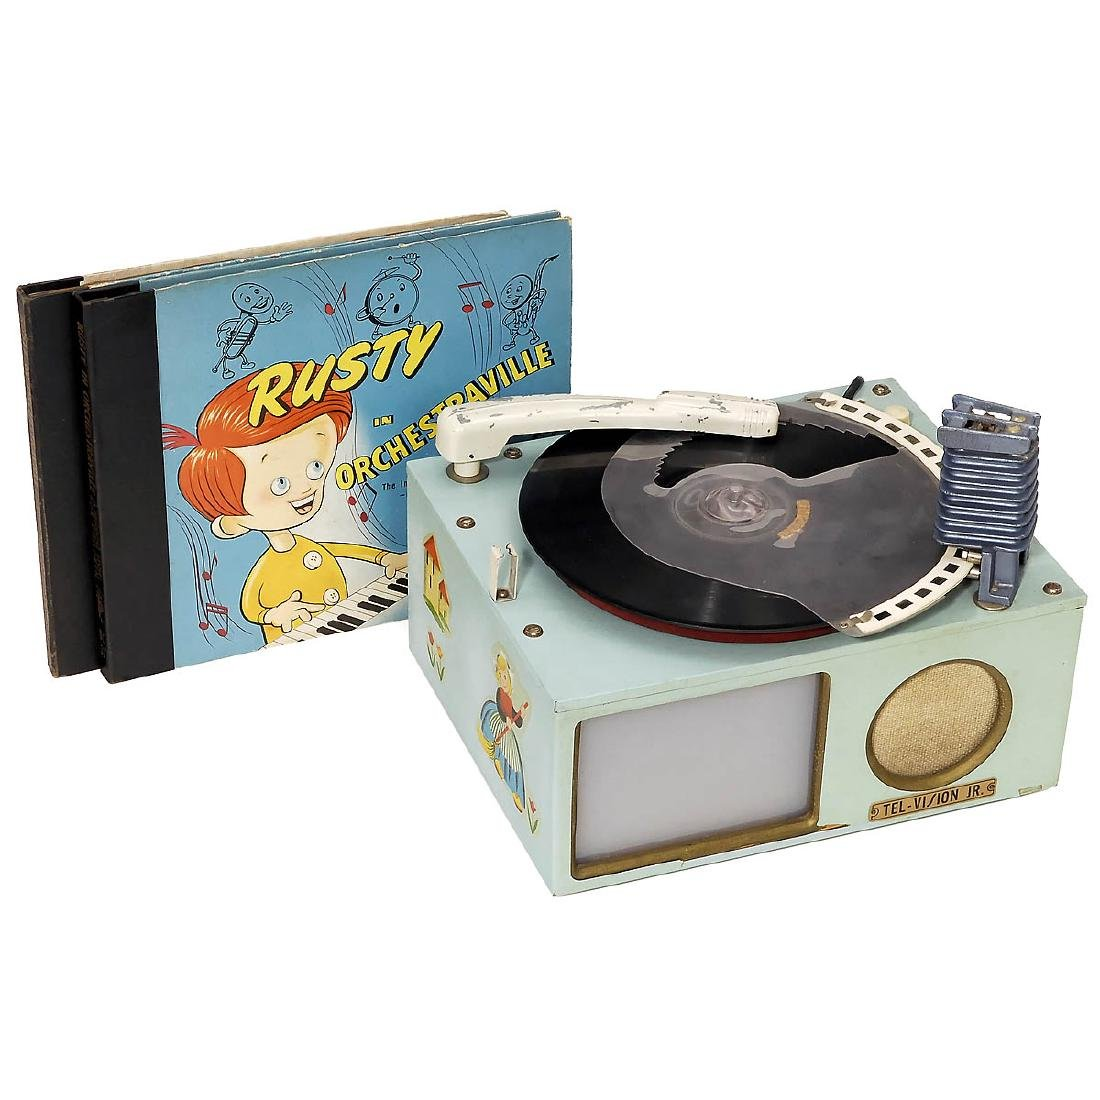 Tel-Vision Jr. Record Player with Slide Projection, c.